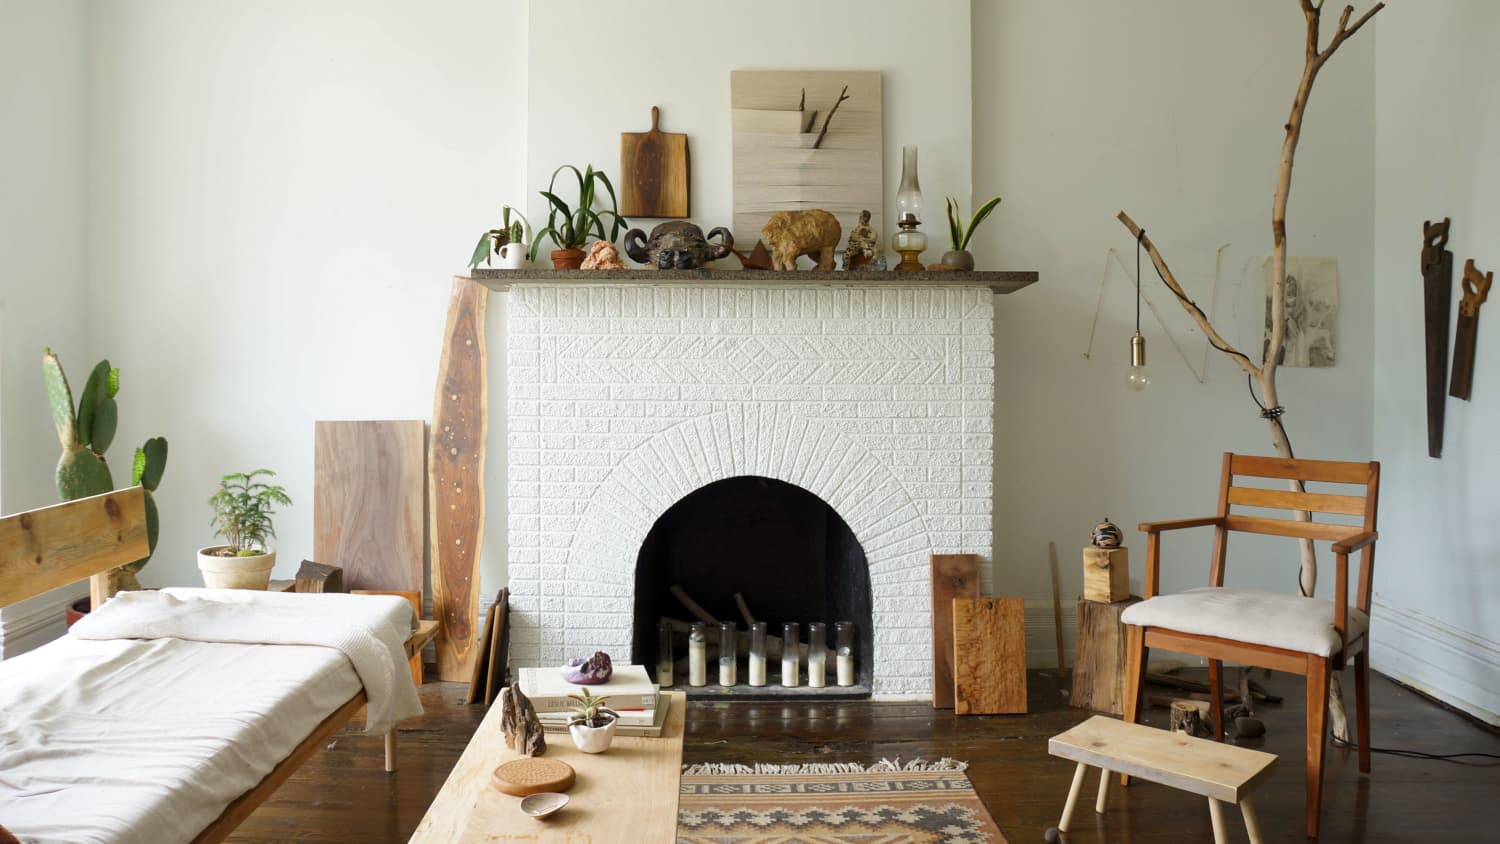 The 20 Best Mantel Ideas How To Decorate A Fireplace Mantel Apartment Therapy